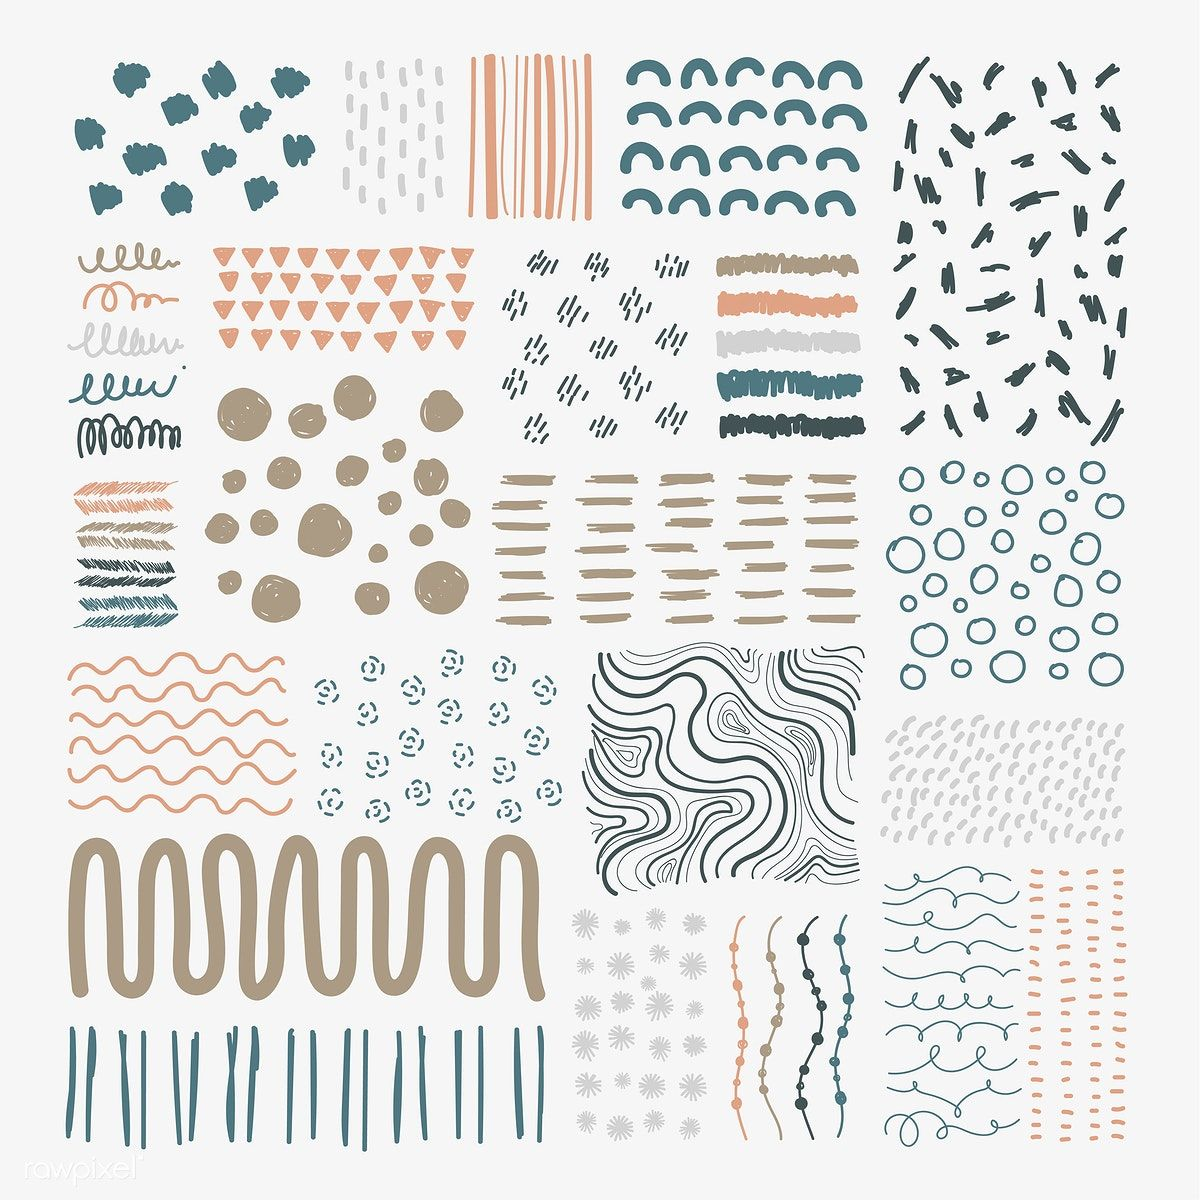 FREE - Hand drawn patterned design elements vector set | free image by rawpixel.com / Sicha